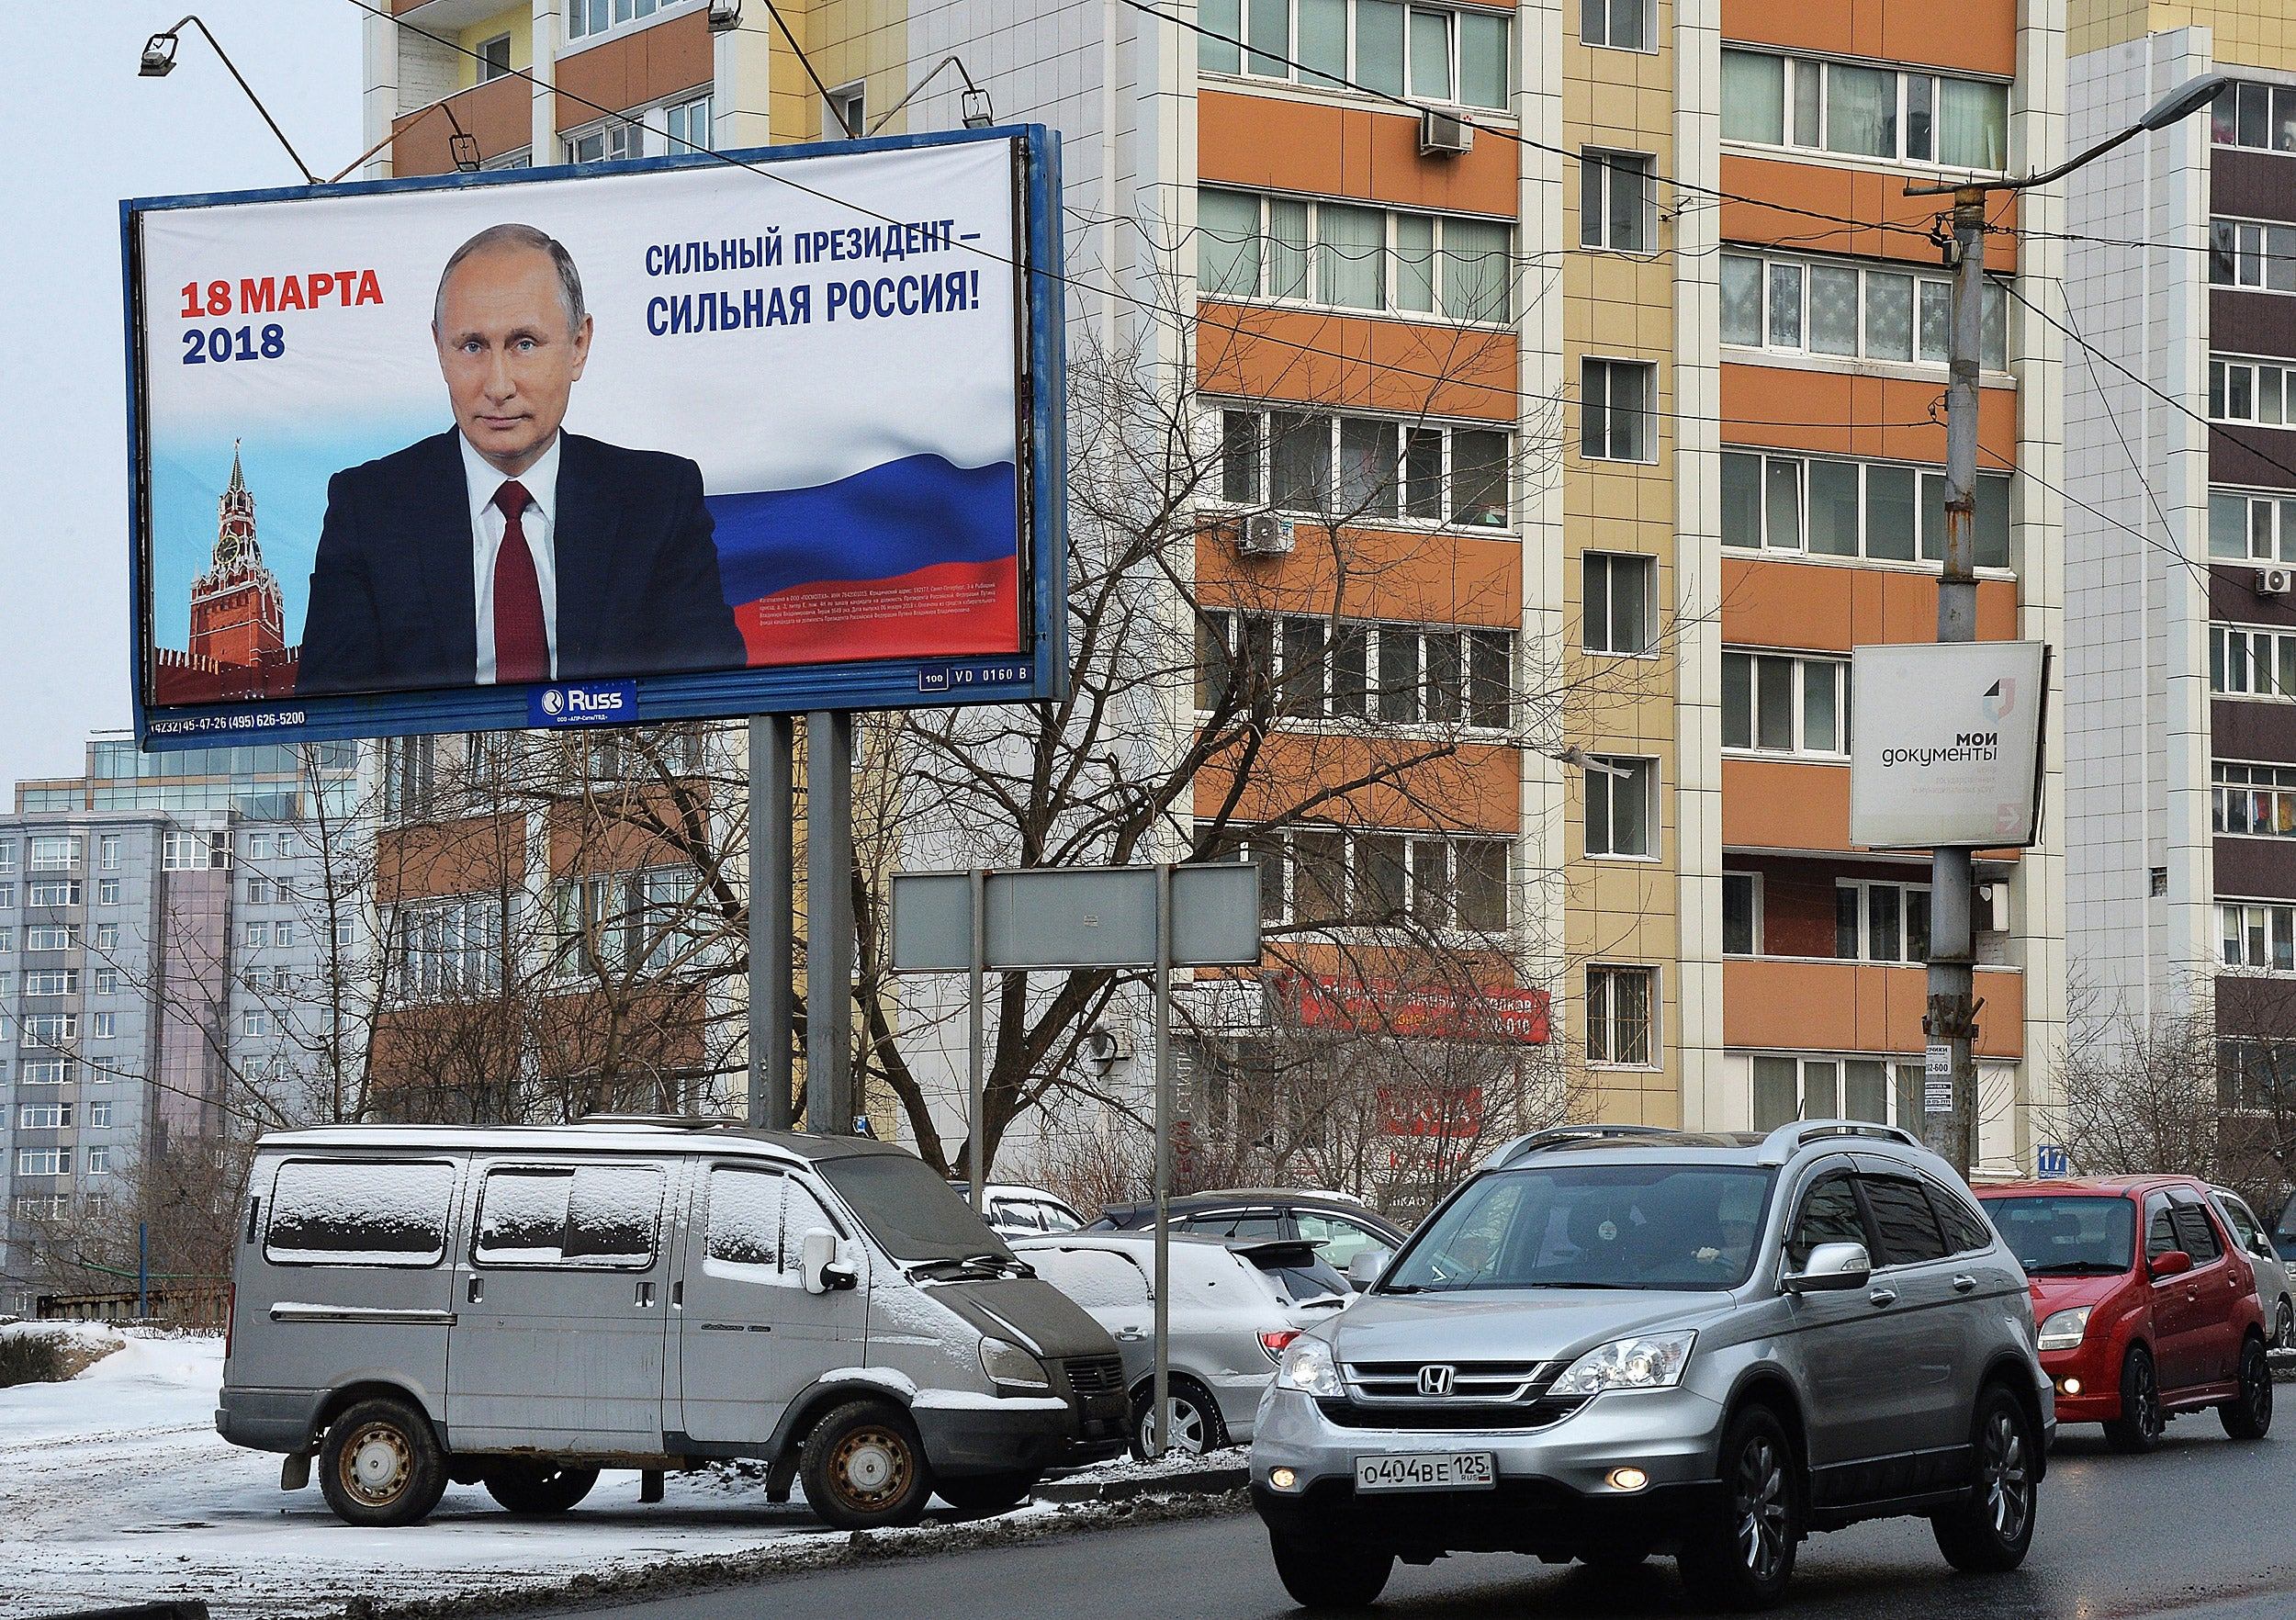 """""""Strong President — Strong Russia!"""" declares a campaign billboard in support of Russian President Vladimir Putin ahead of the March 18 election. Putin is expected to win his fourth term easily, despite his notoriety abroad."""